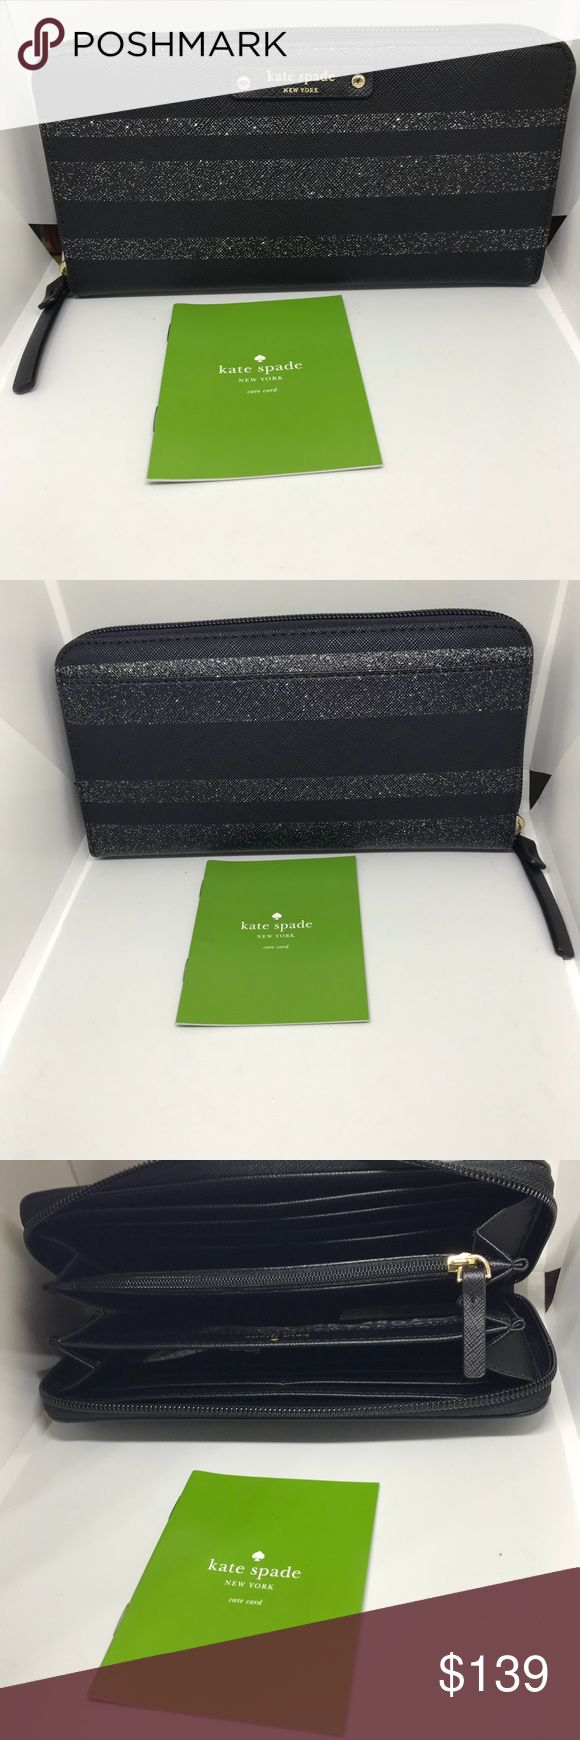 """♠️Kate Spade Glitter Strip Zip Around • Black Glitter Striped zip around wallet *  Full length back slip pocket *  Fully lined in signature print *  12 credit card slips  *  Center zipper coin compartment *  2 billfold slips & 3 open drop areas *  Care card included MEASURES: 4""""(h) x 8""""(L) kate spade Bags Wallets"""